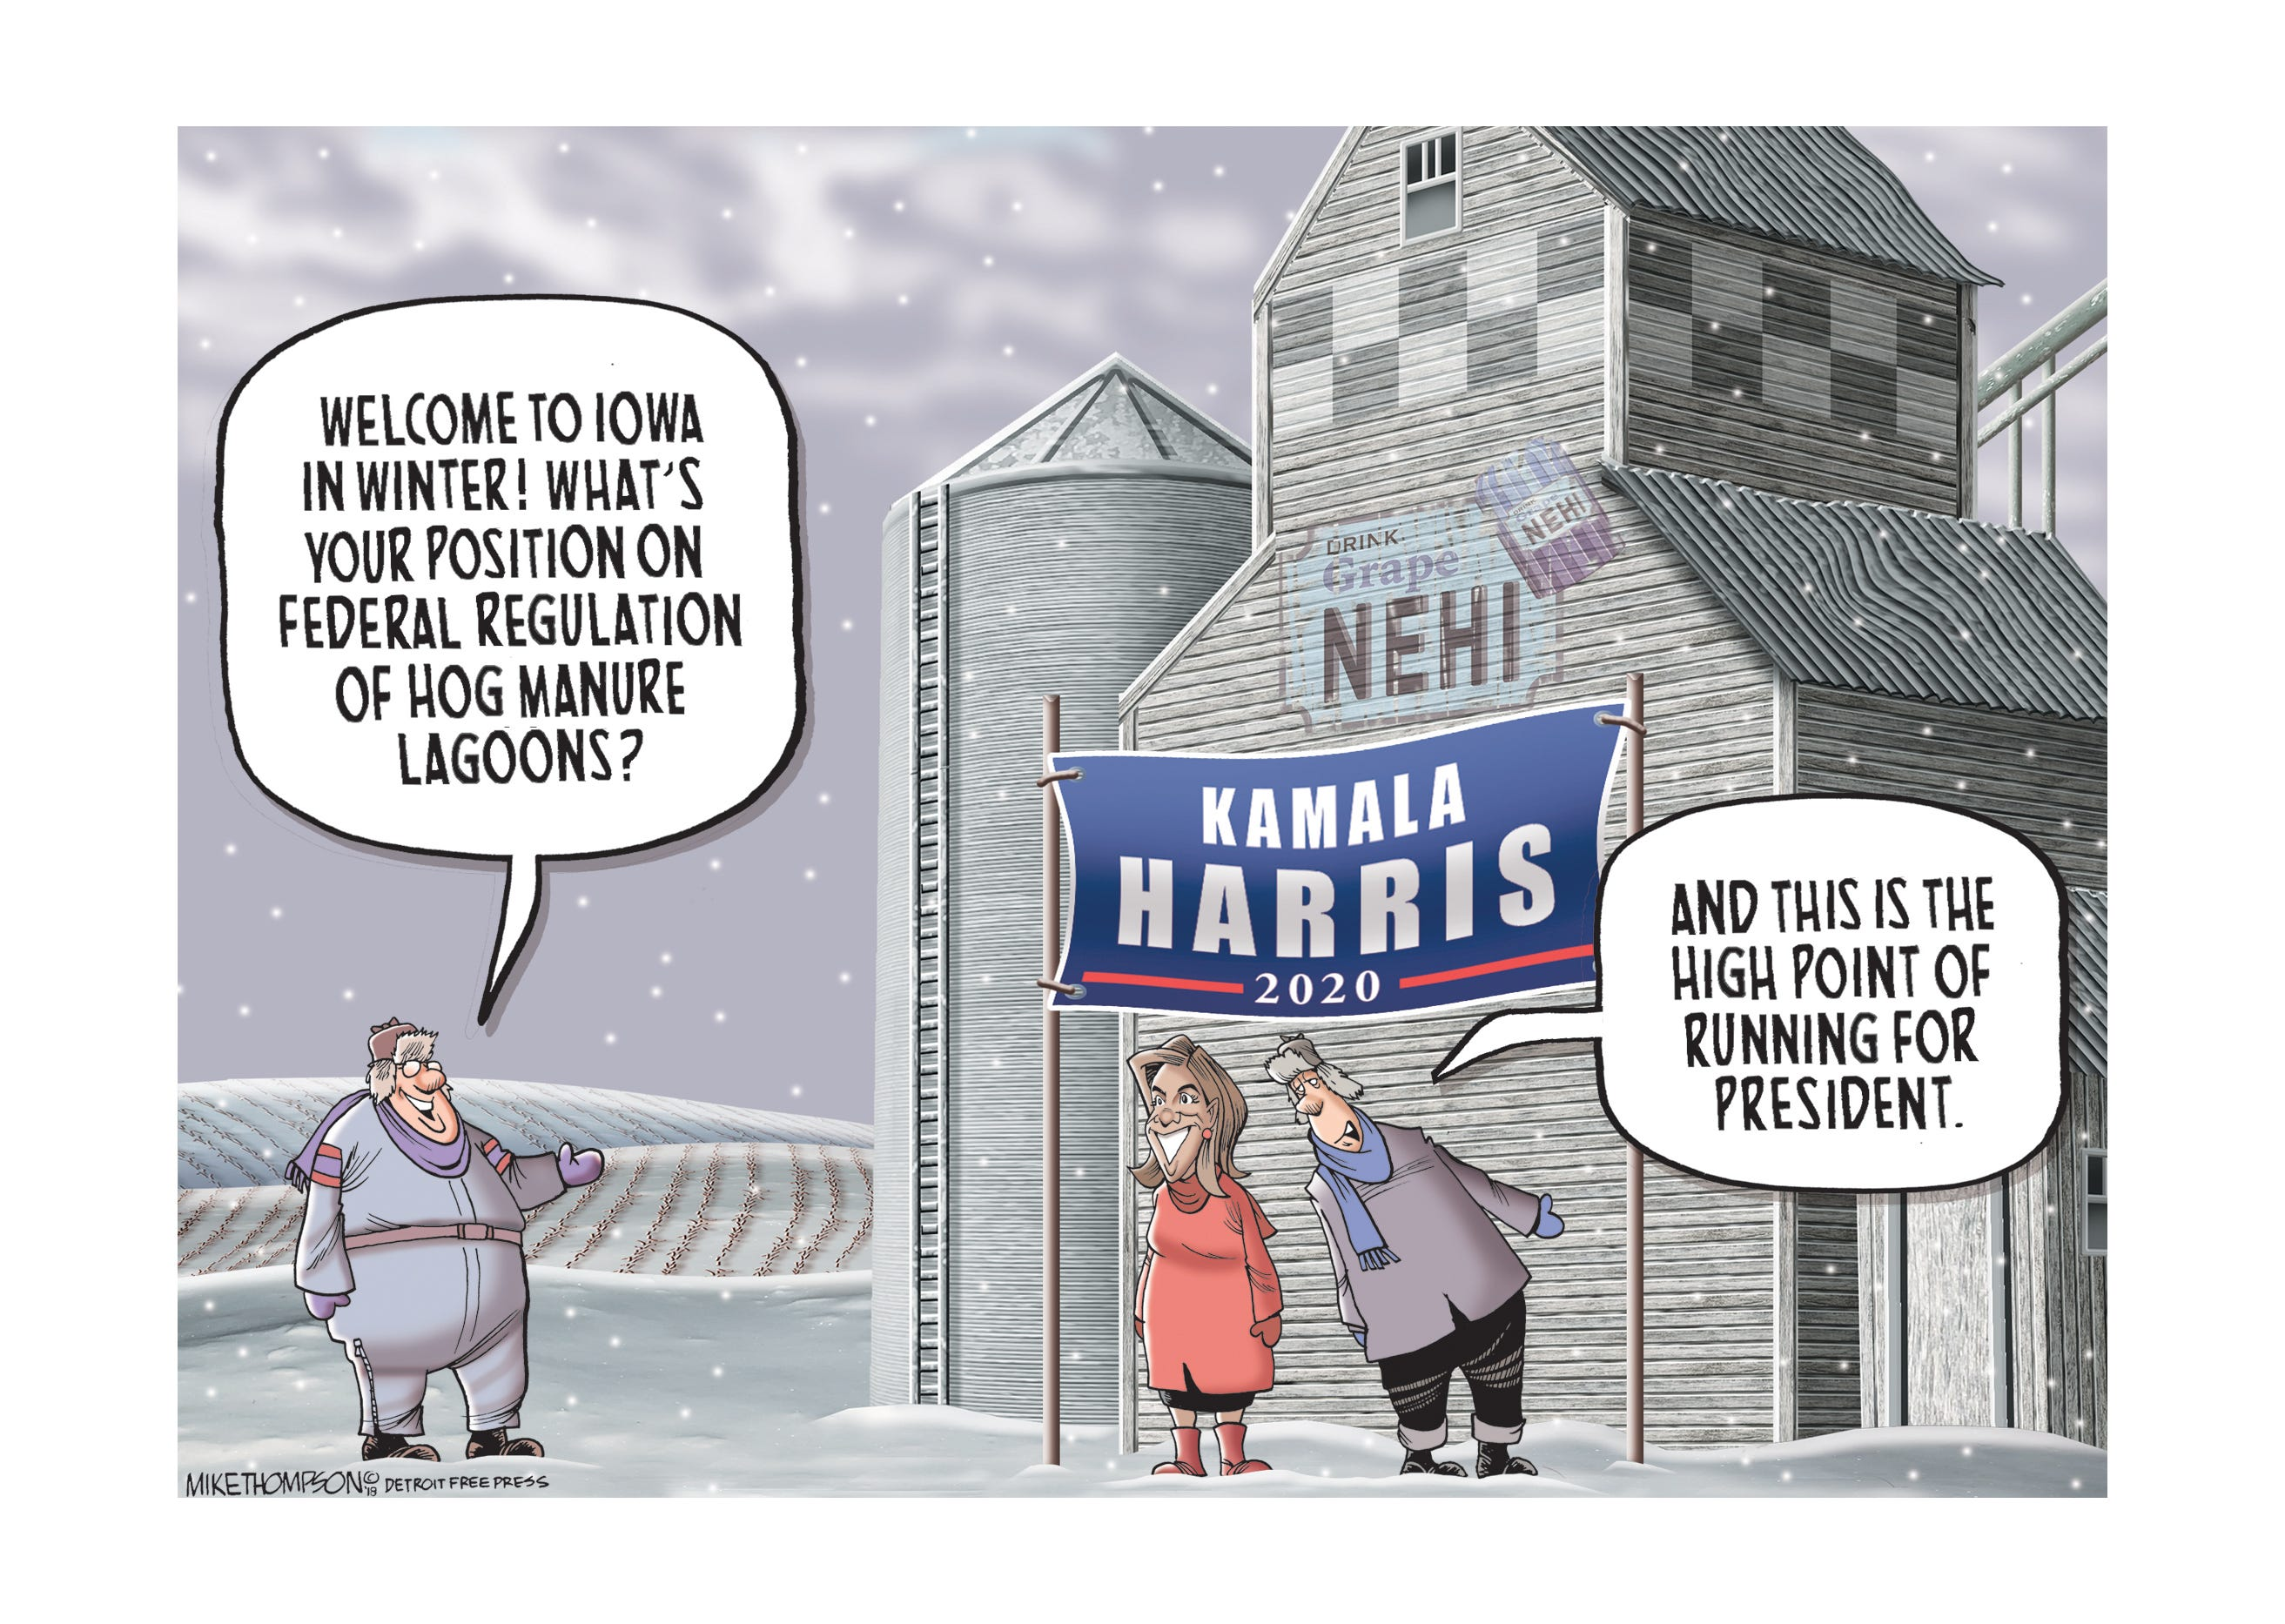 http://www freep com/picture-gallery/opinion/columnists/mike